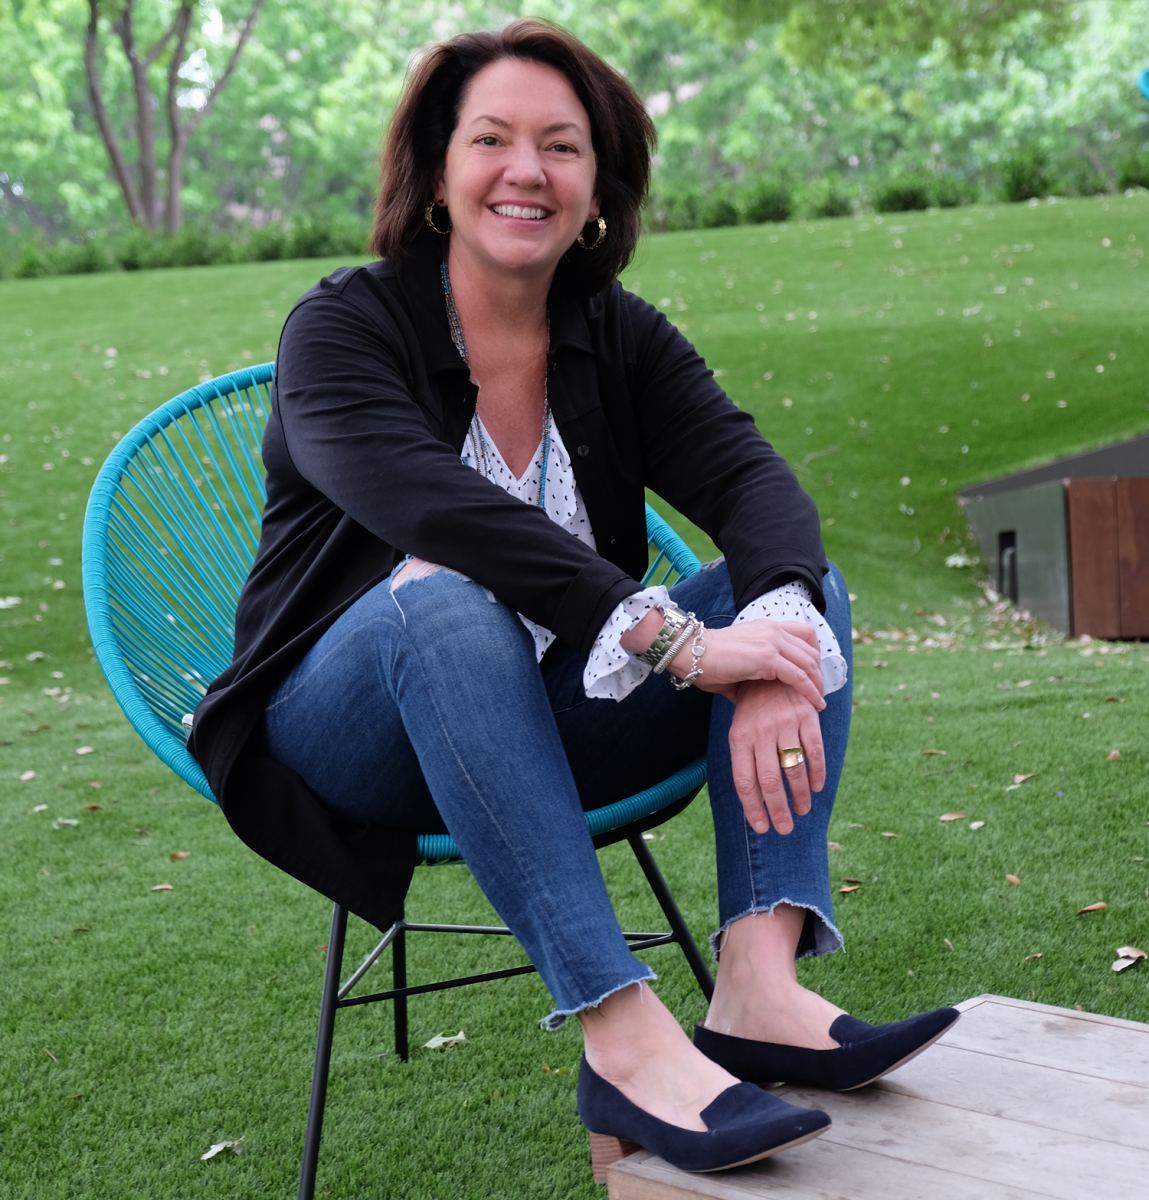 Laura Huffman seated in a teal blue chair with green grass behind her.